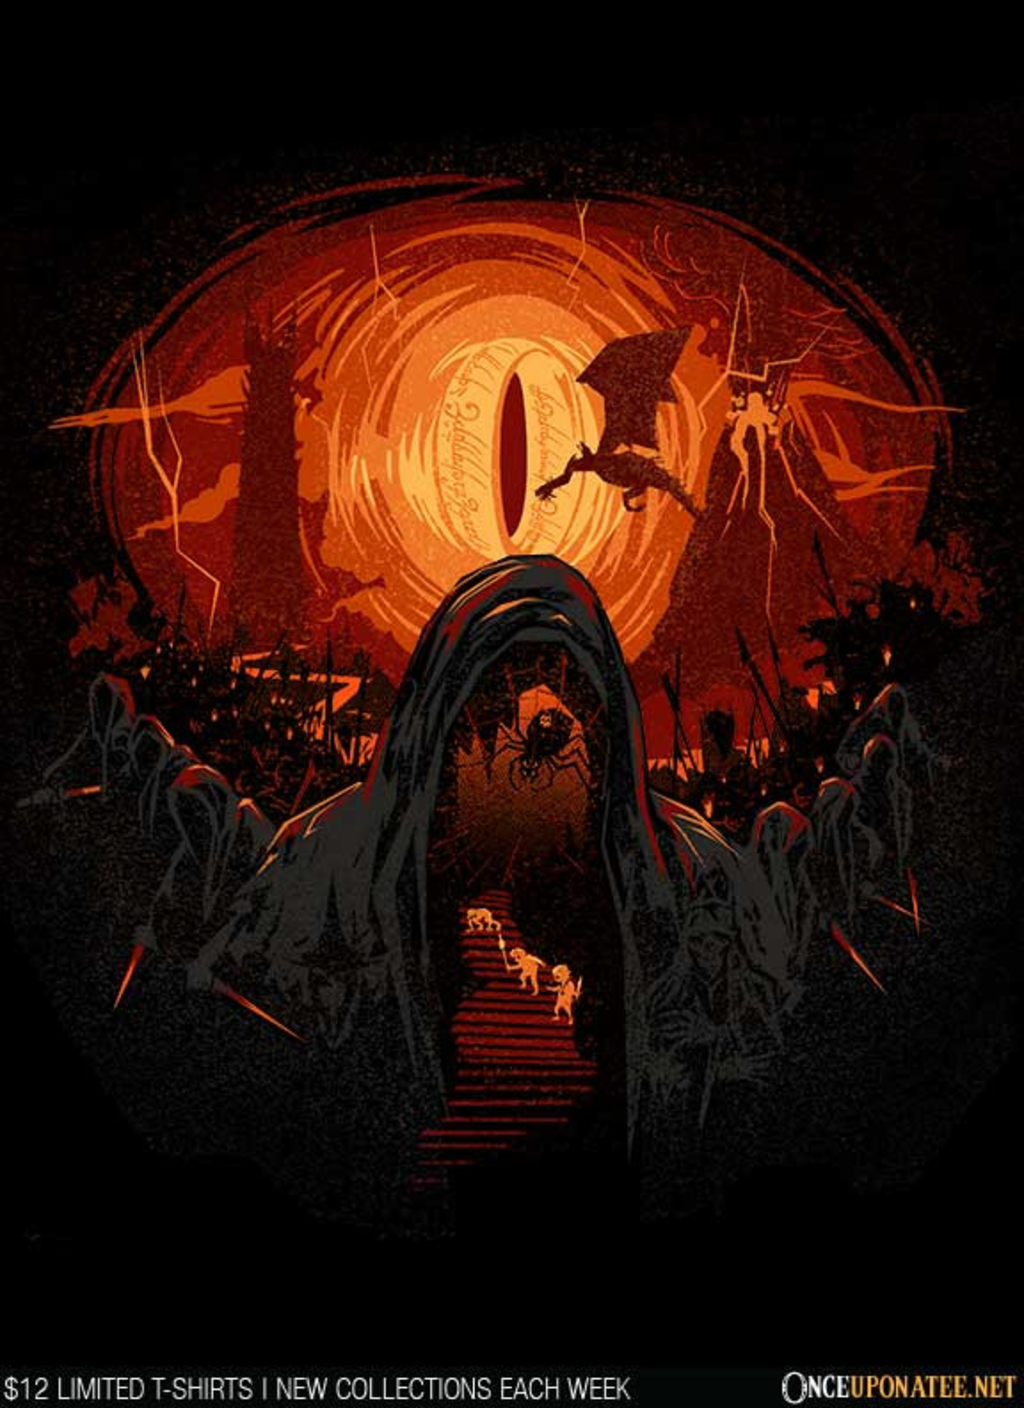 Once Upon a Tee: Hobbit's Nightmare